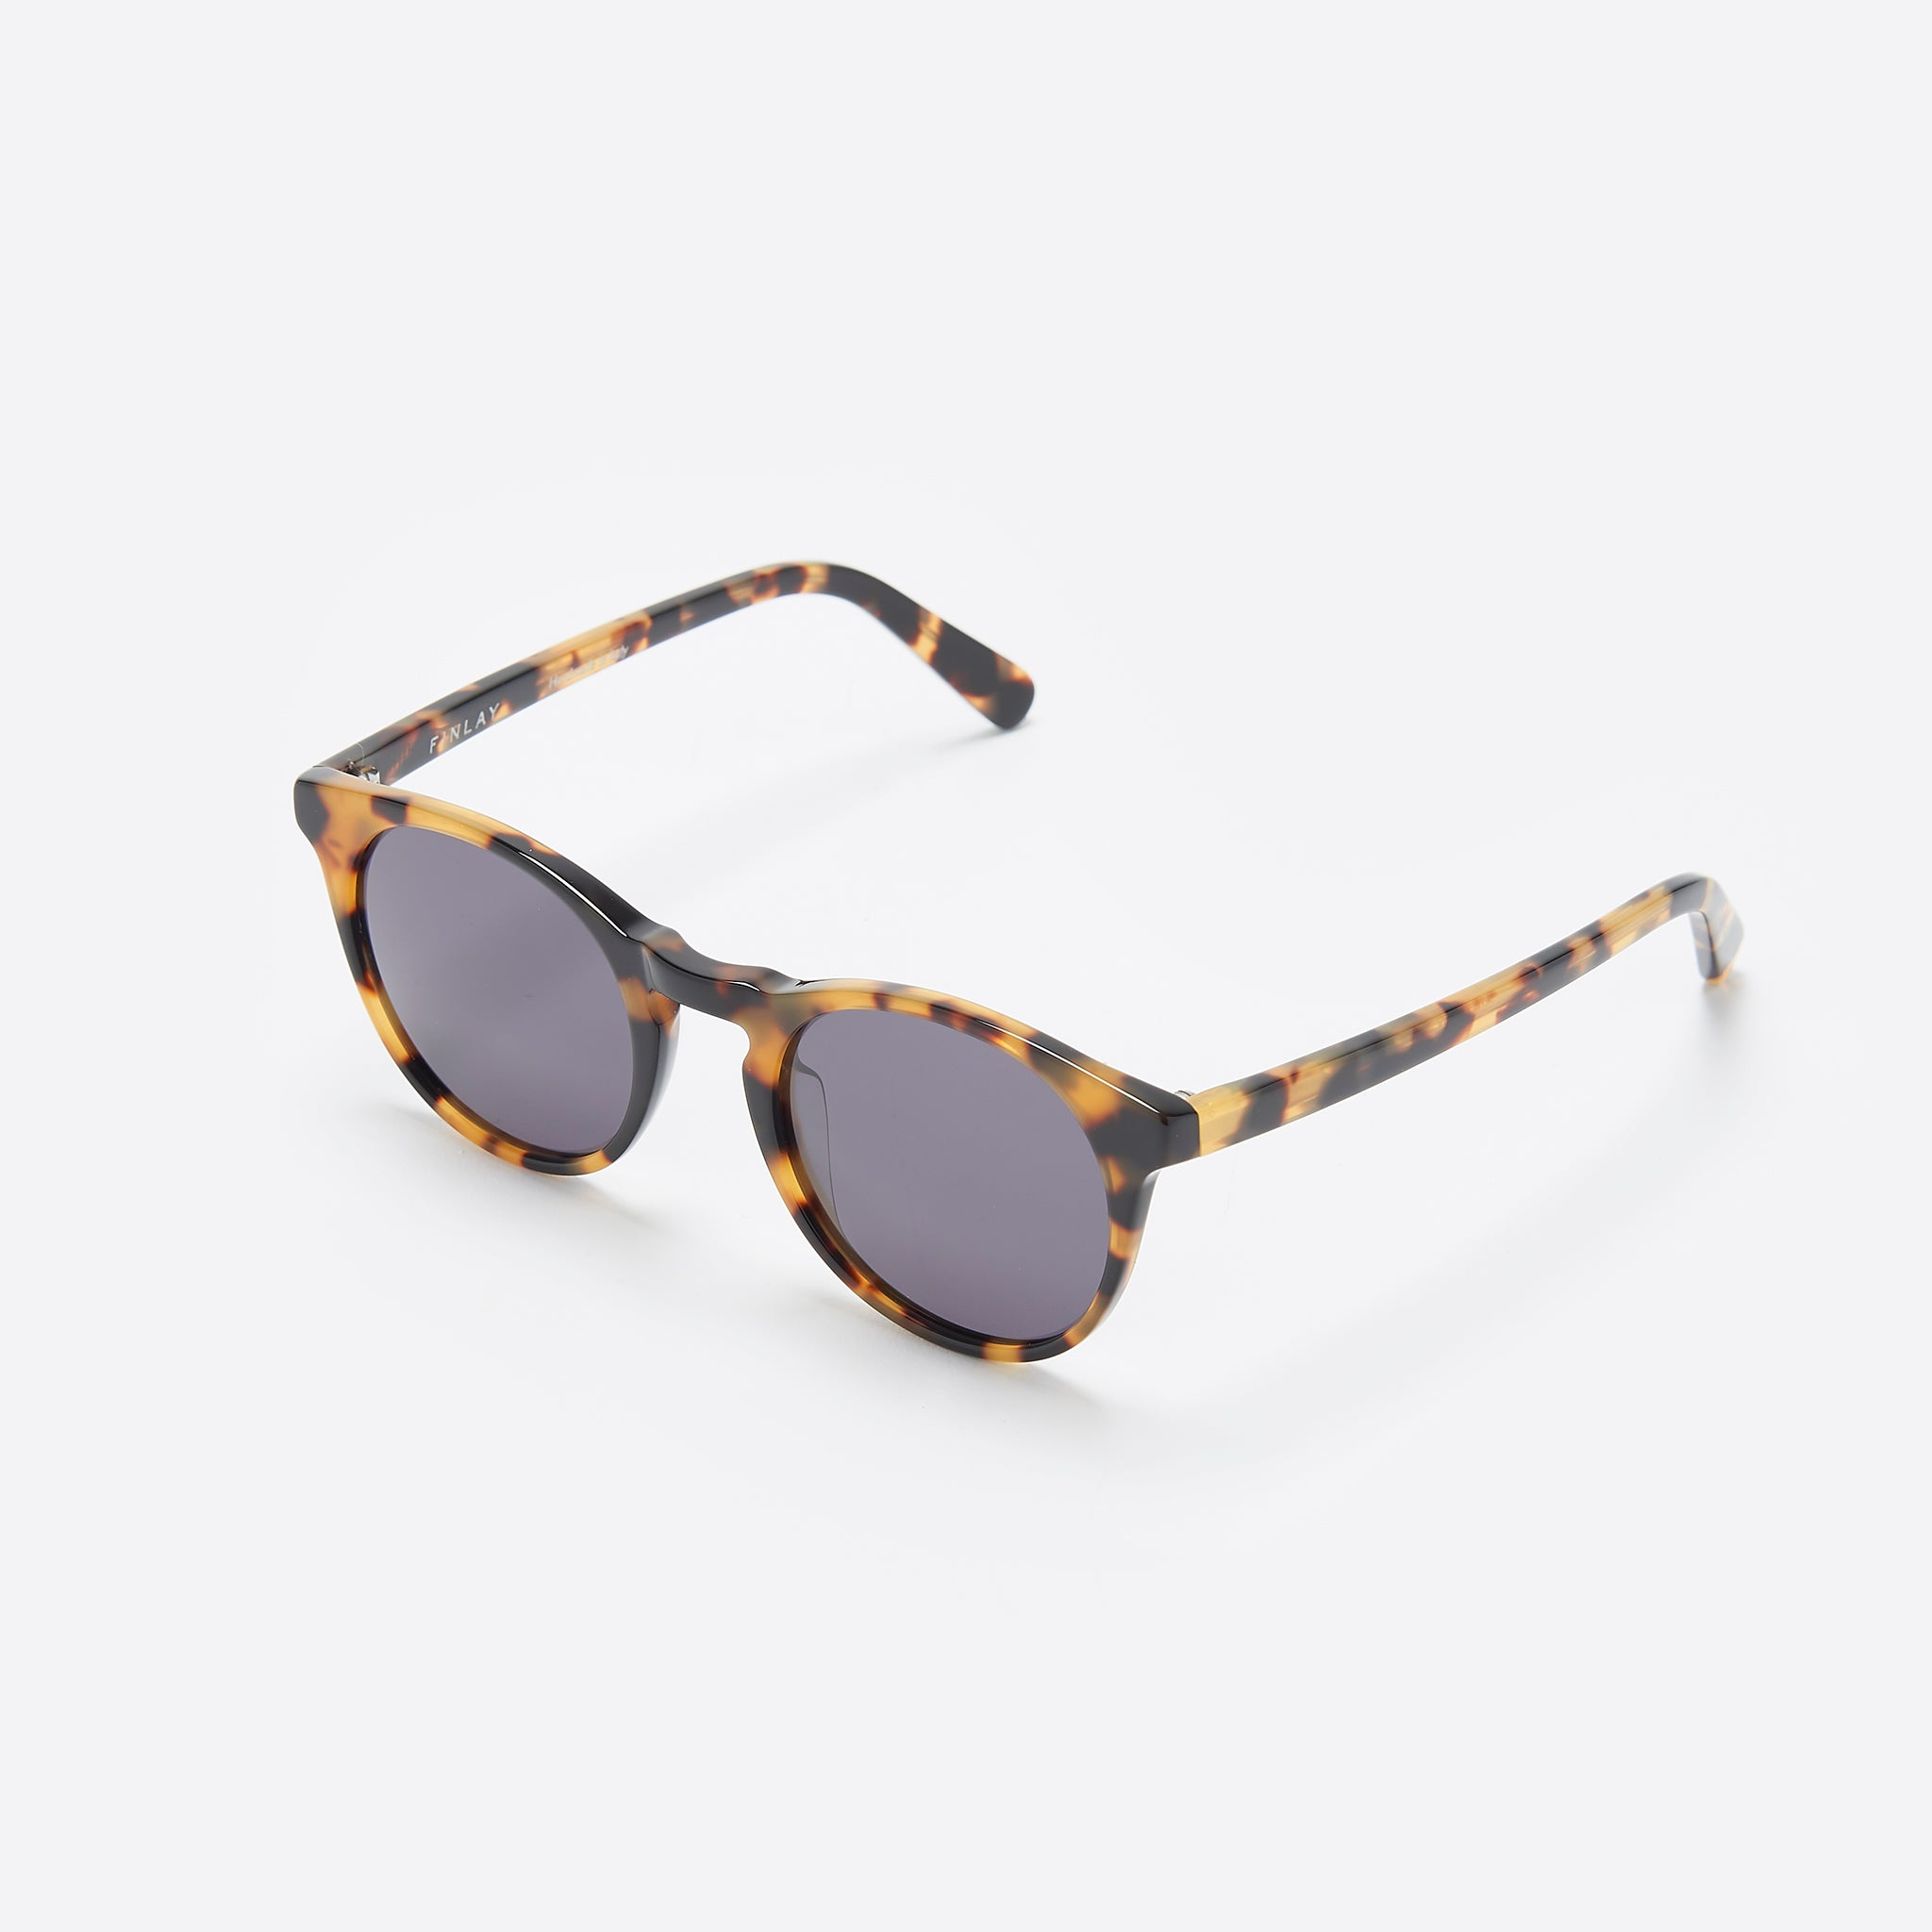 FINLAY London Percy in Light Tortoise with Grey Lenses